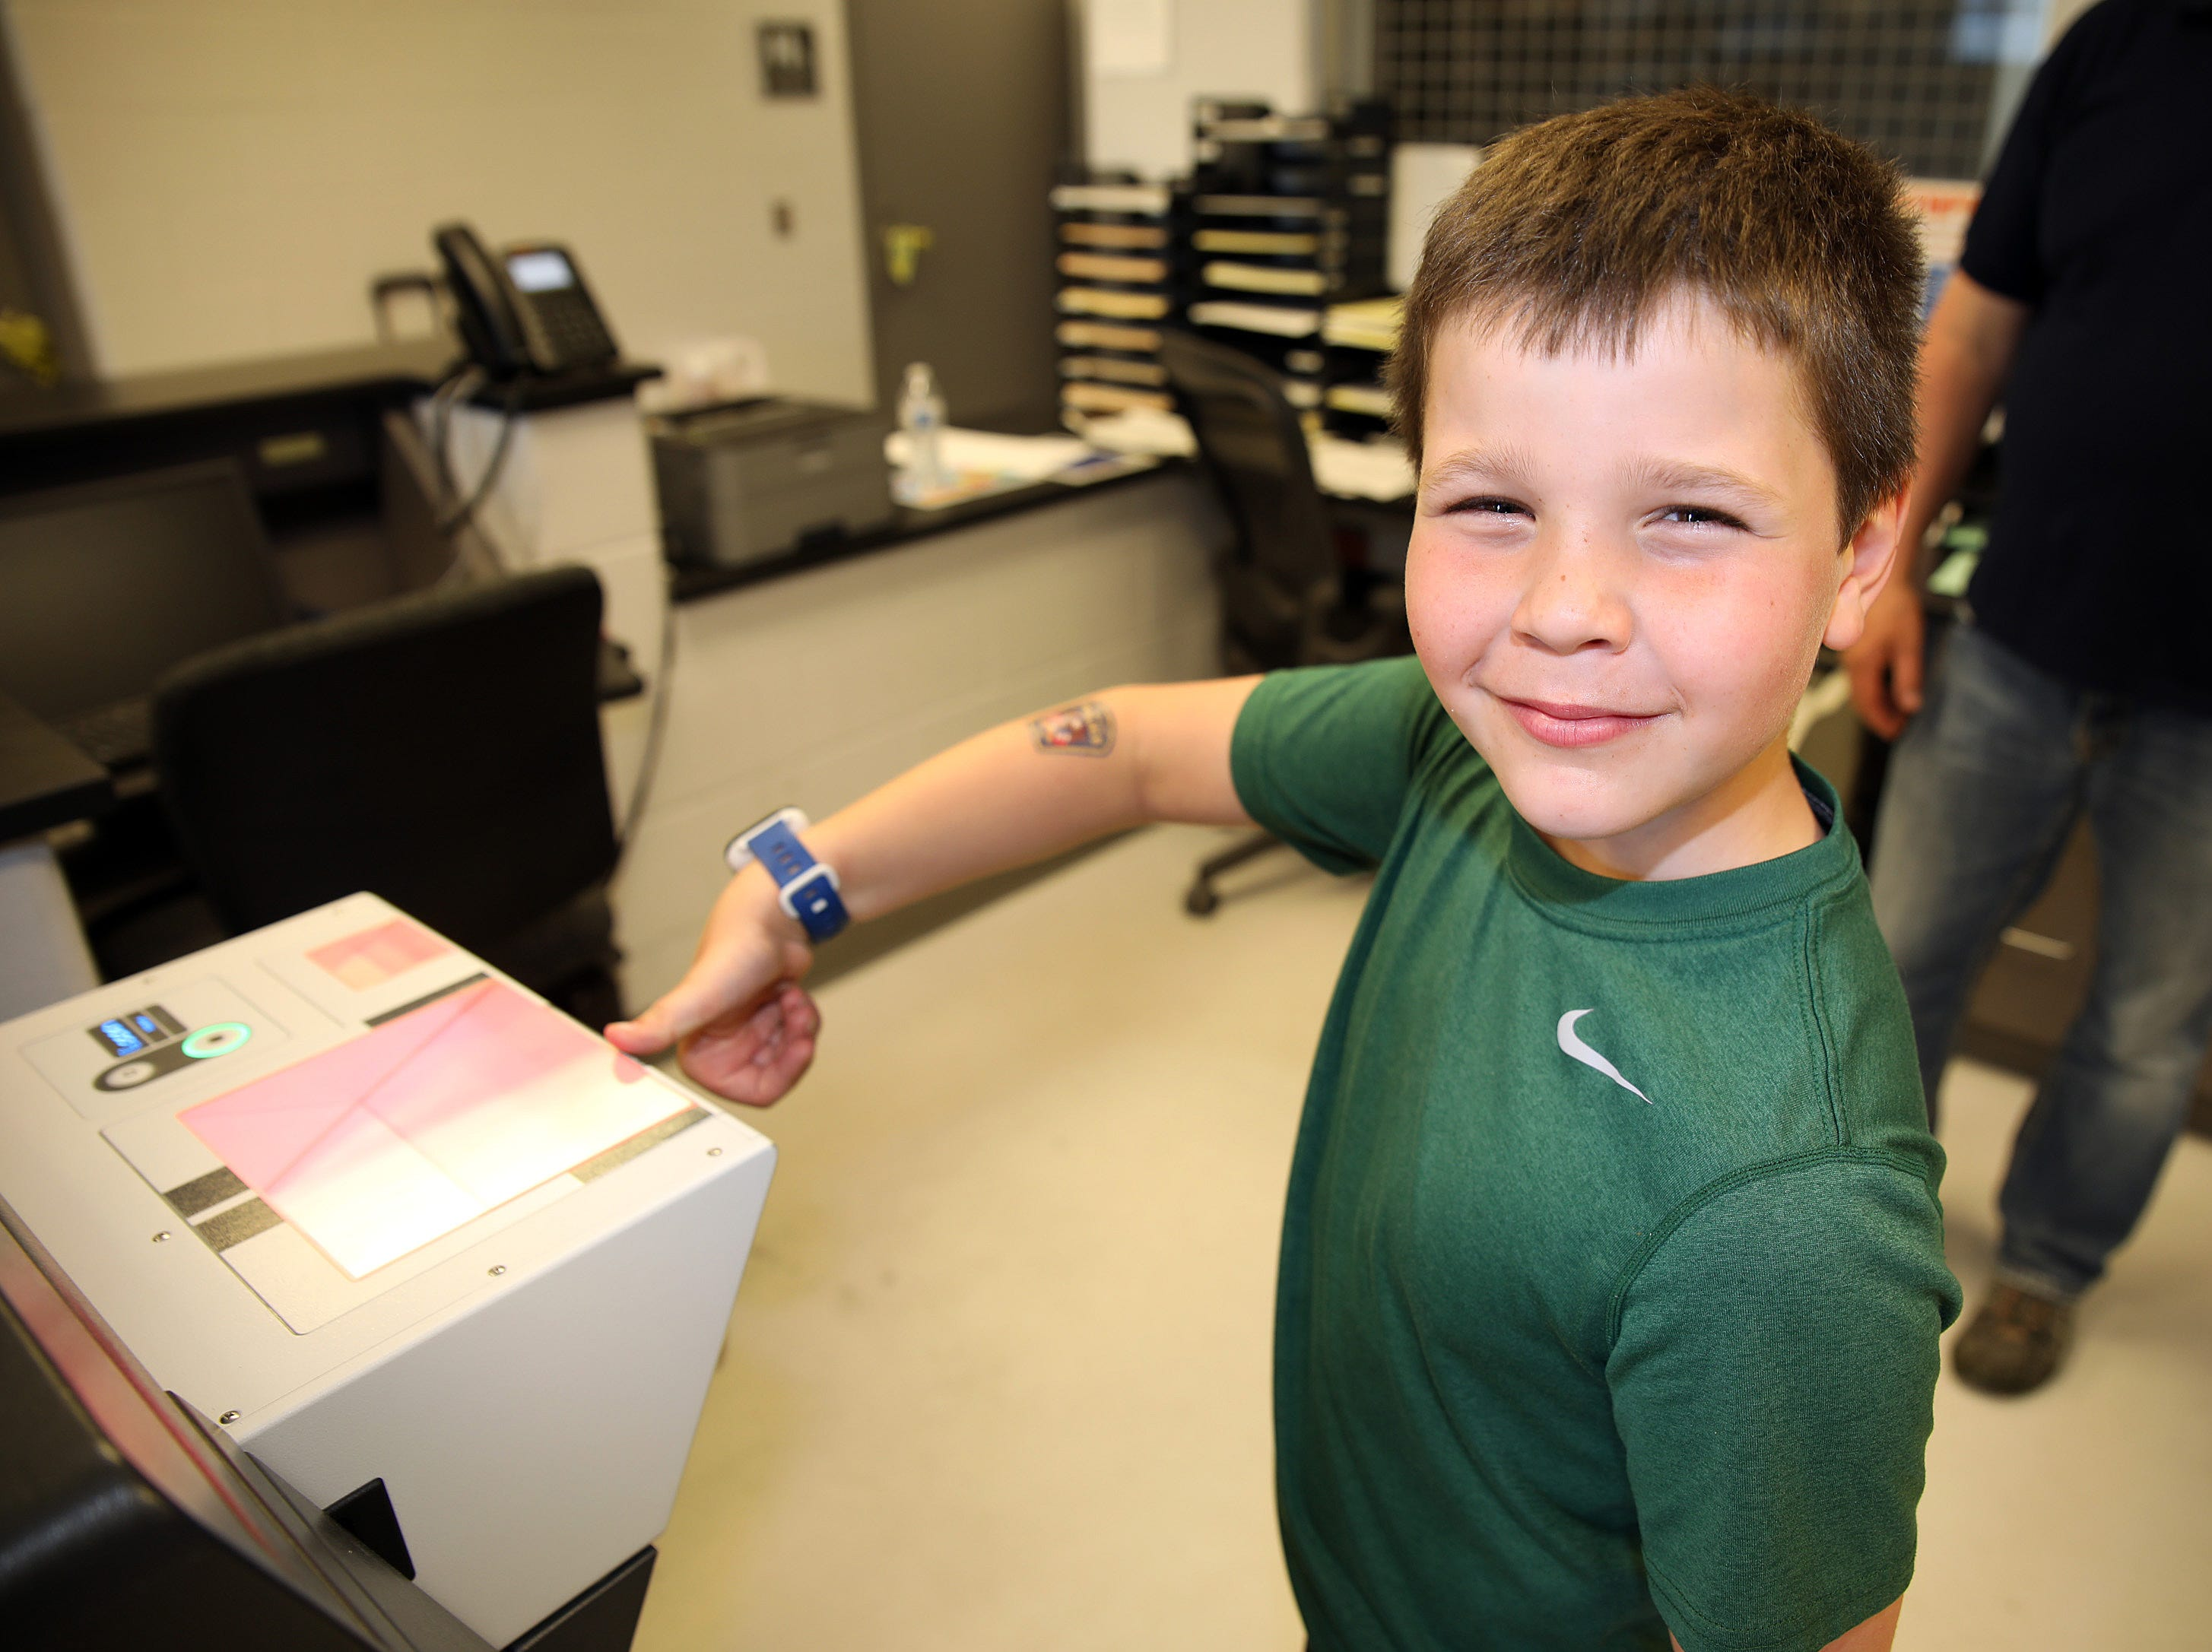 Liam Kroska, 8, of Ankeny is ready for a fingerprint test during the Ankeny Police Week Community Picnic on Tuesday, May 14, 2019 at the Ankeny Police Headquarters located at 411 SW Ordnance Road. The event featured a tour of the police station, magician Jonathon May, free Chick Fil-A sandwiches for the first 1,000 guests, free Kona Ice, temporary tattoos, and a great opportunity to meet the officers who protect and serve the city of Ankeny.